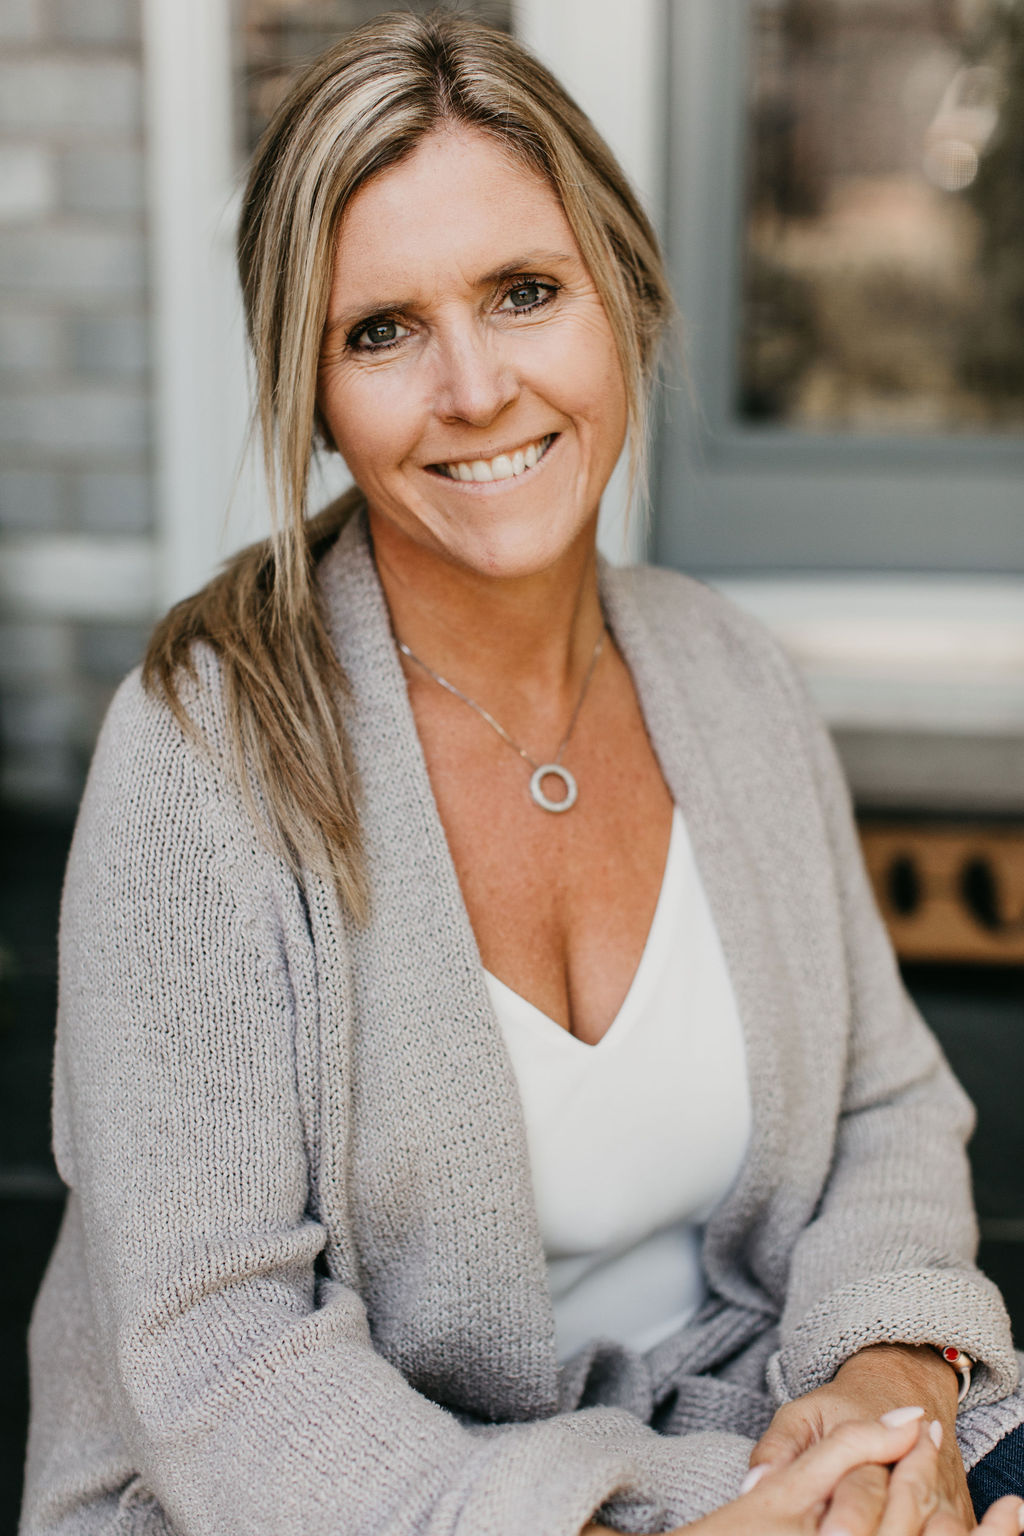 Kathy Long - My Bachelor of Commerce degree from McMaster University and various Real Estate Designations has equipped me to become an accomplished professional realtor.